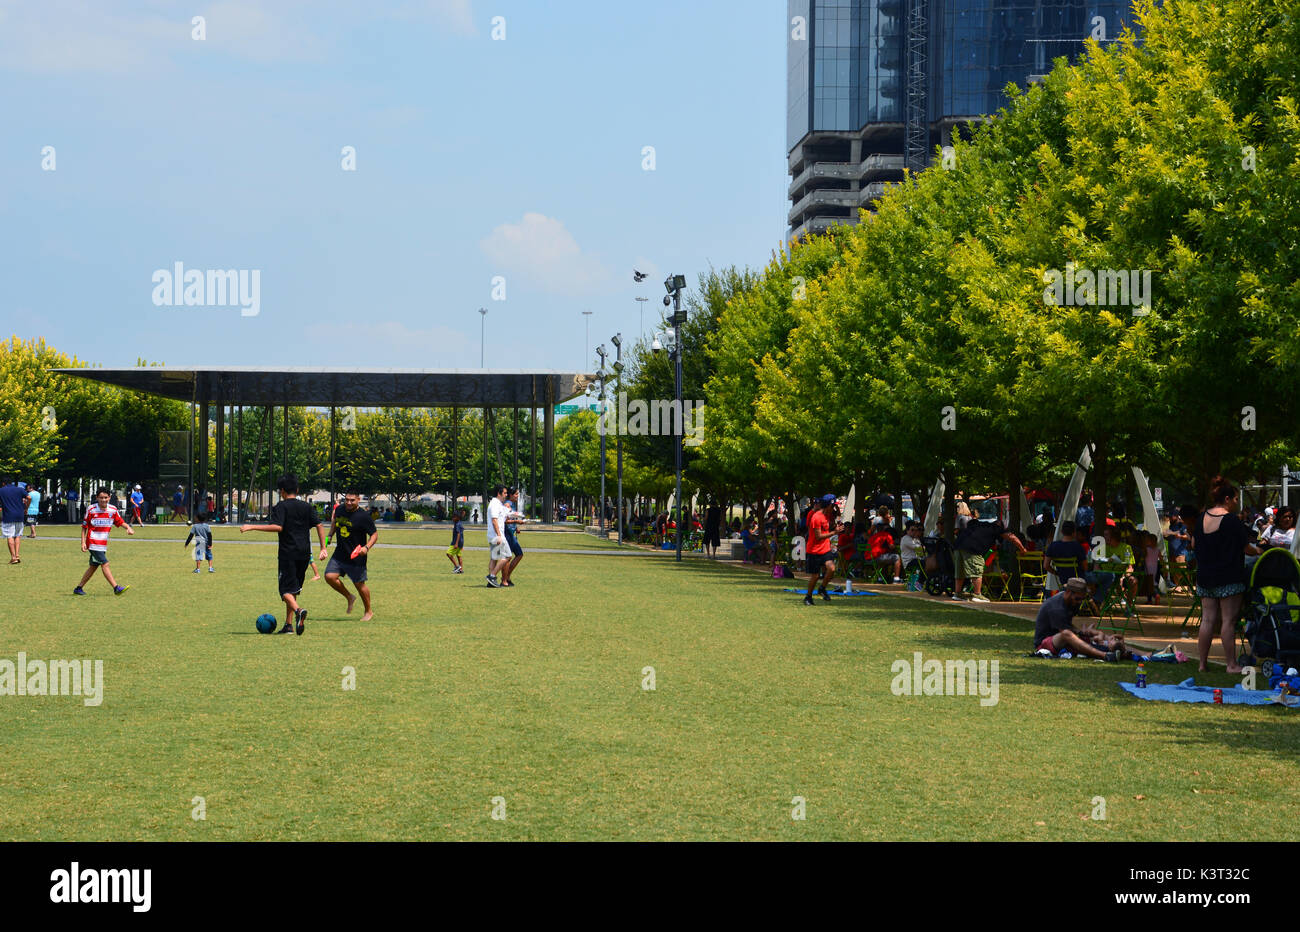 The lawn at Klyde Warren park provides an open space for residents to play and open seating for the music pavilion. - Stock Image